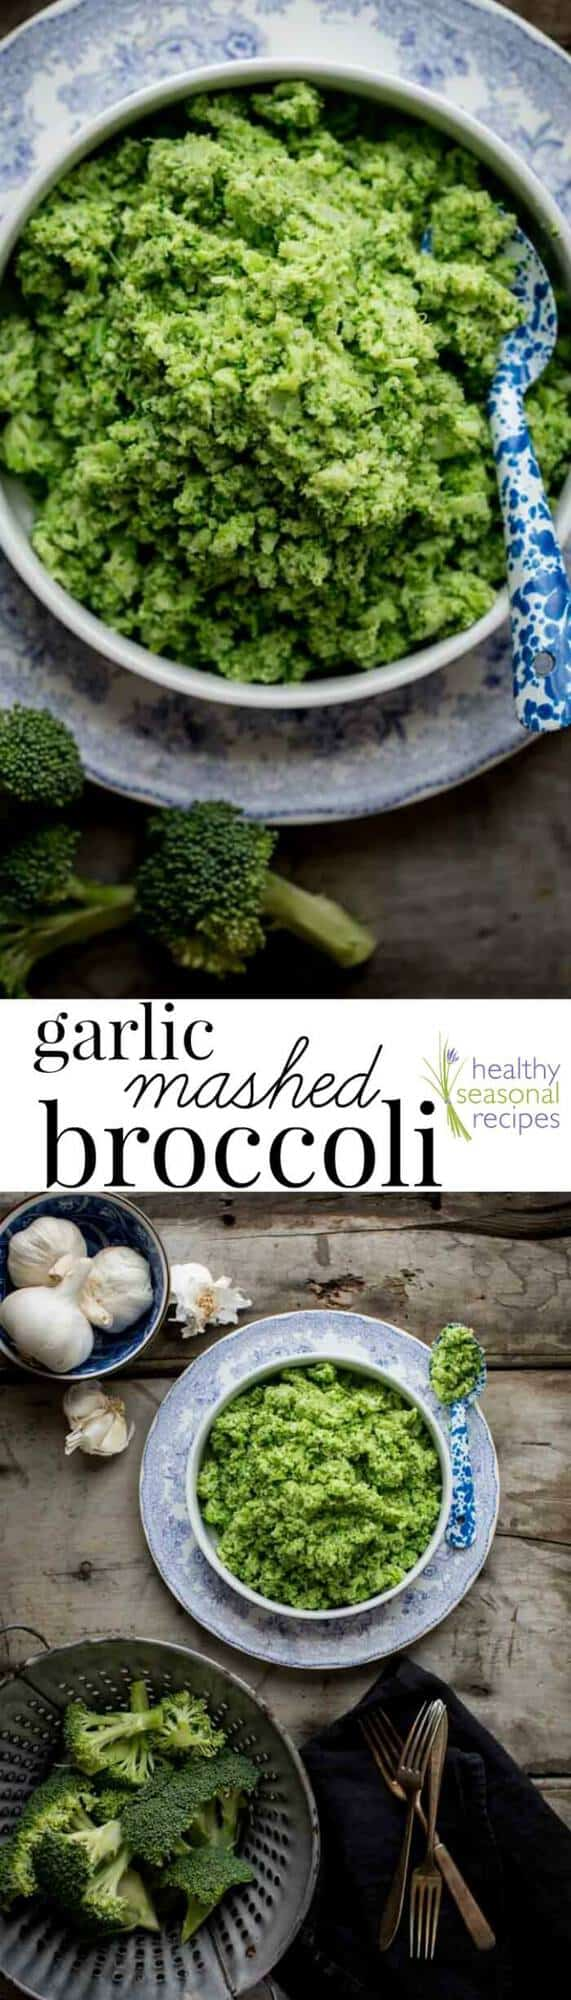 A bowl of mashed broccoli with text